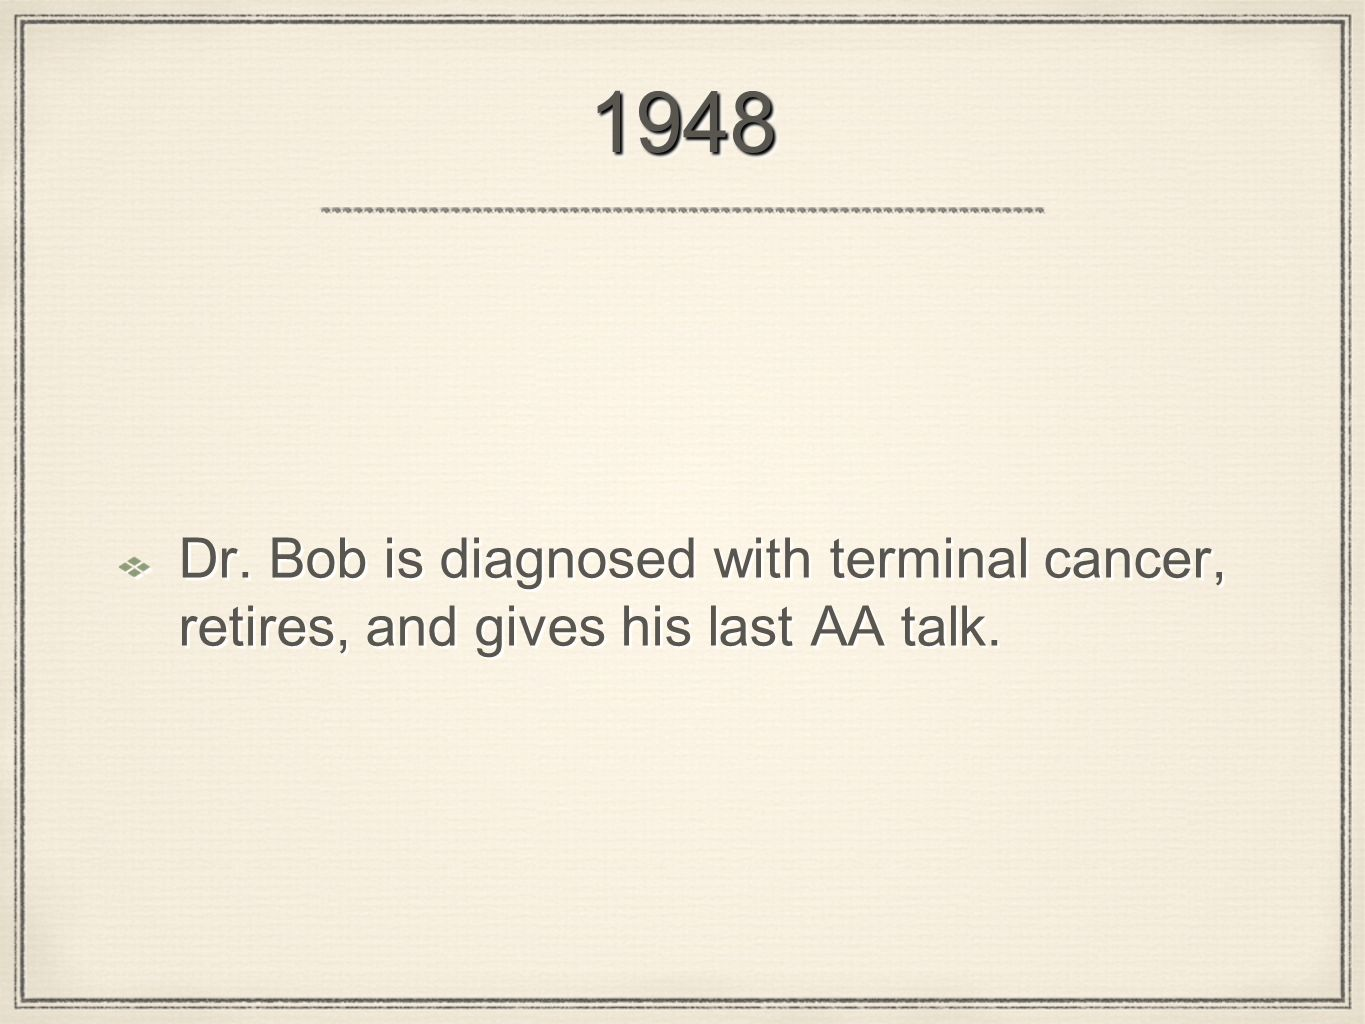 19481948 Dr. Bob is diagnosed with terminal cancer, retires, and gives his last AA talk.